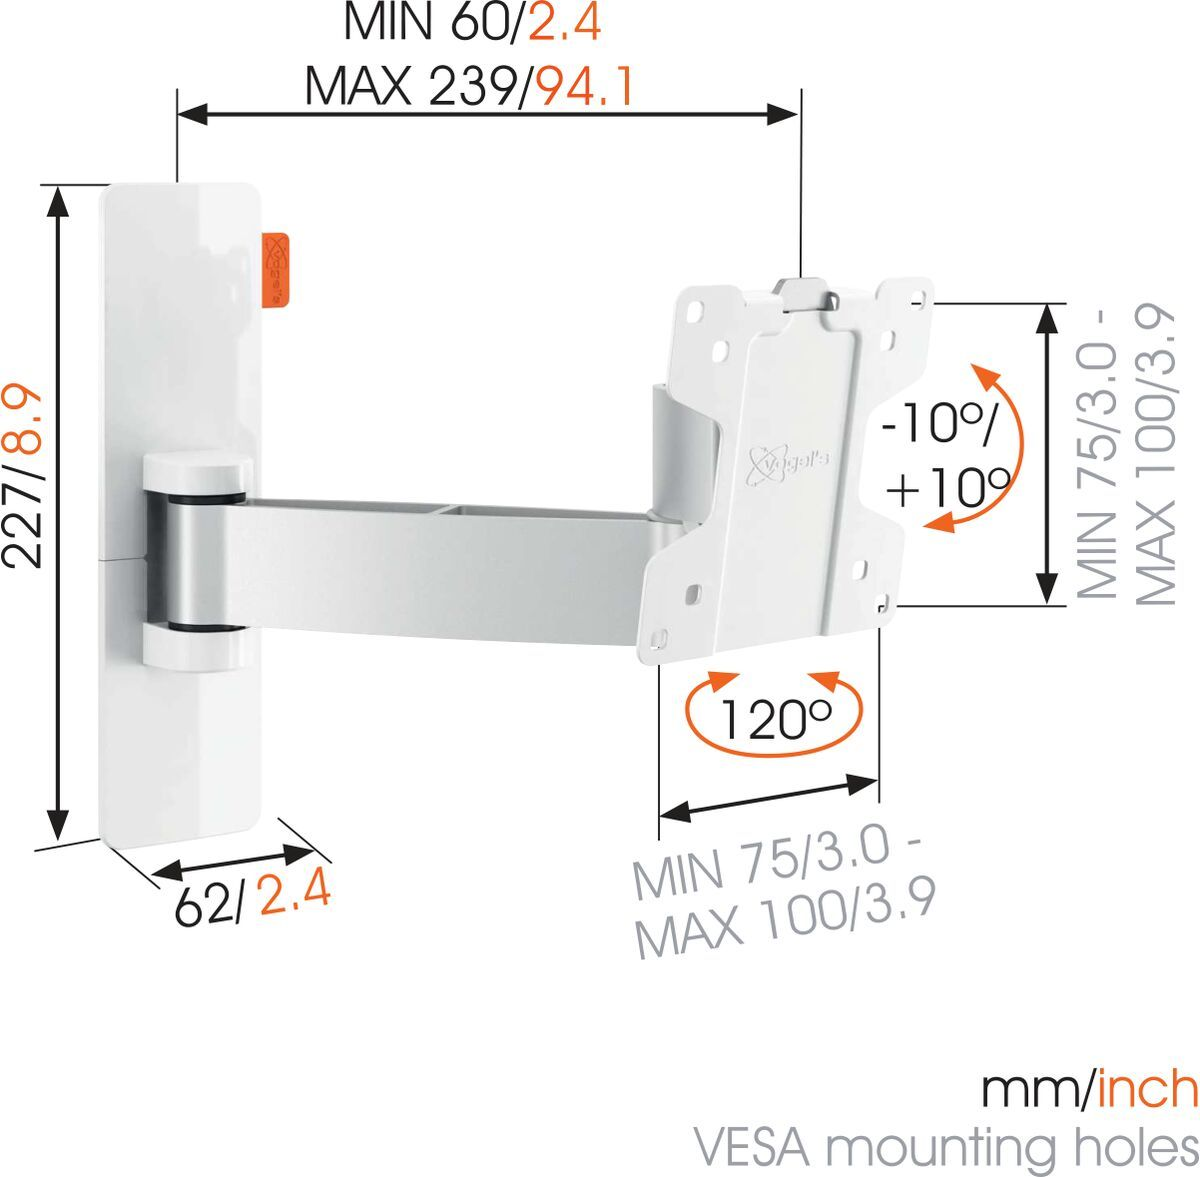 Vogel's WALL 2025 Full-Motion TV Wall Mount (white) - Suitable for 17 up to 26 inch TVs - Motion (up to 120°) - Tilt -10°/+10° - Dimensions